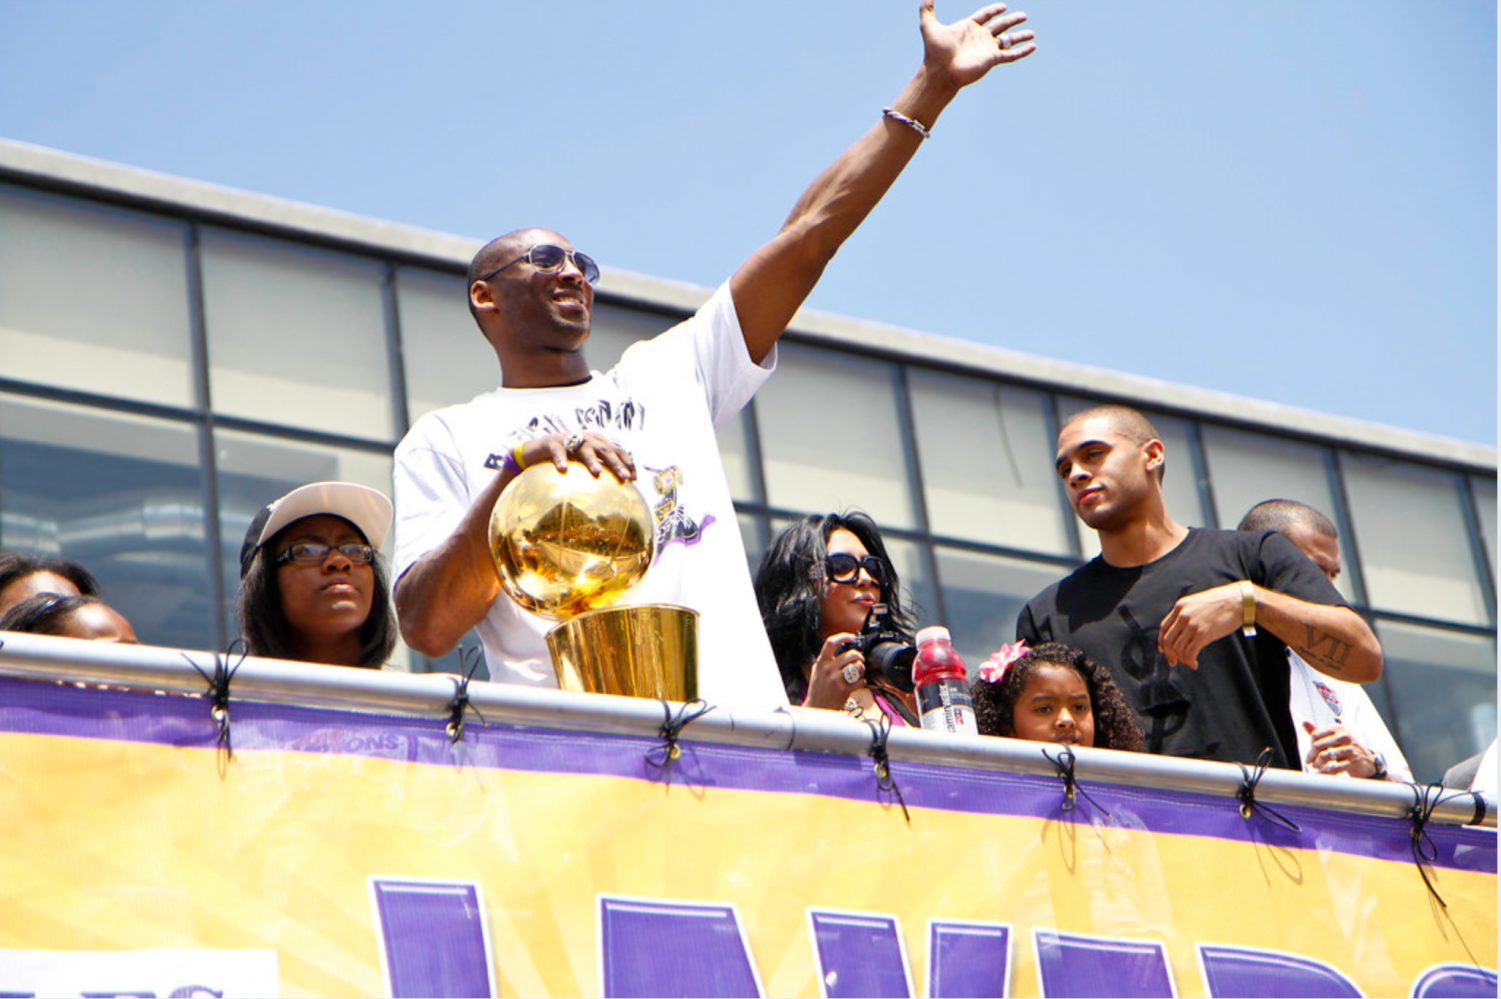 Kobe Bryant waves to fans during the Los Angeles Lakers' 2010 Championship Parade. Bryant won five NBA championships throughout his career.